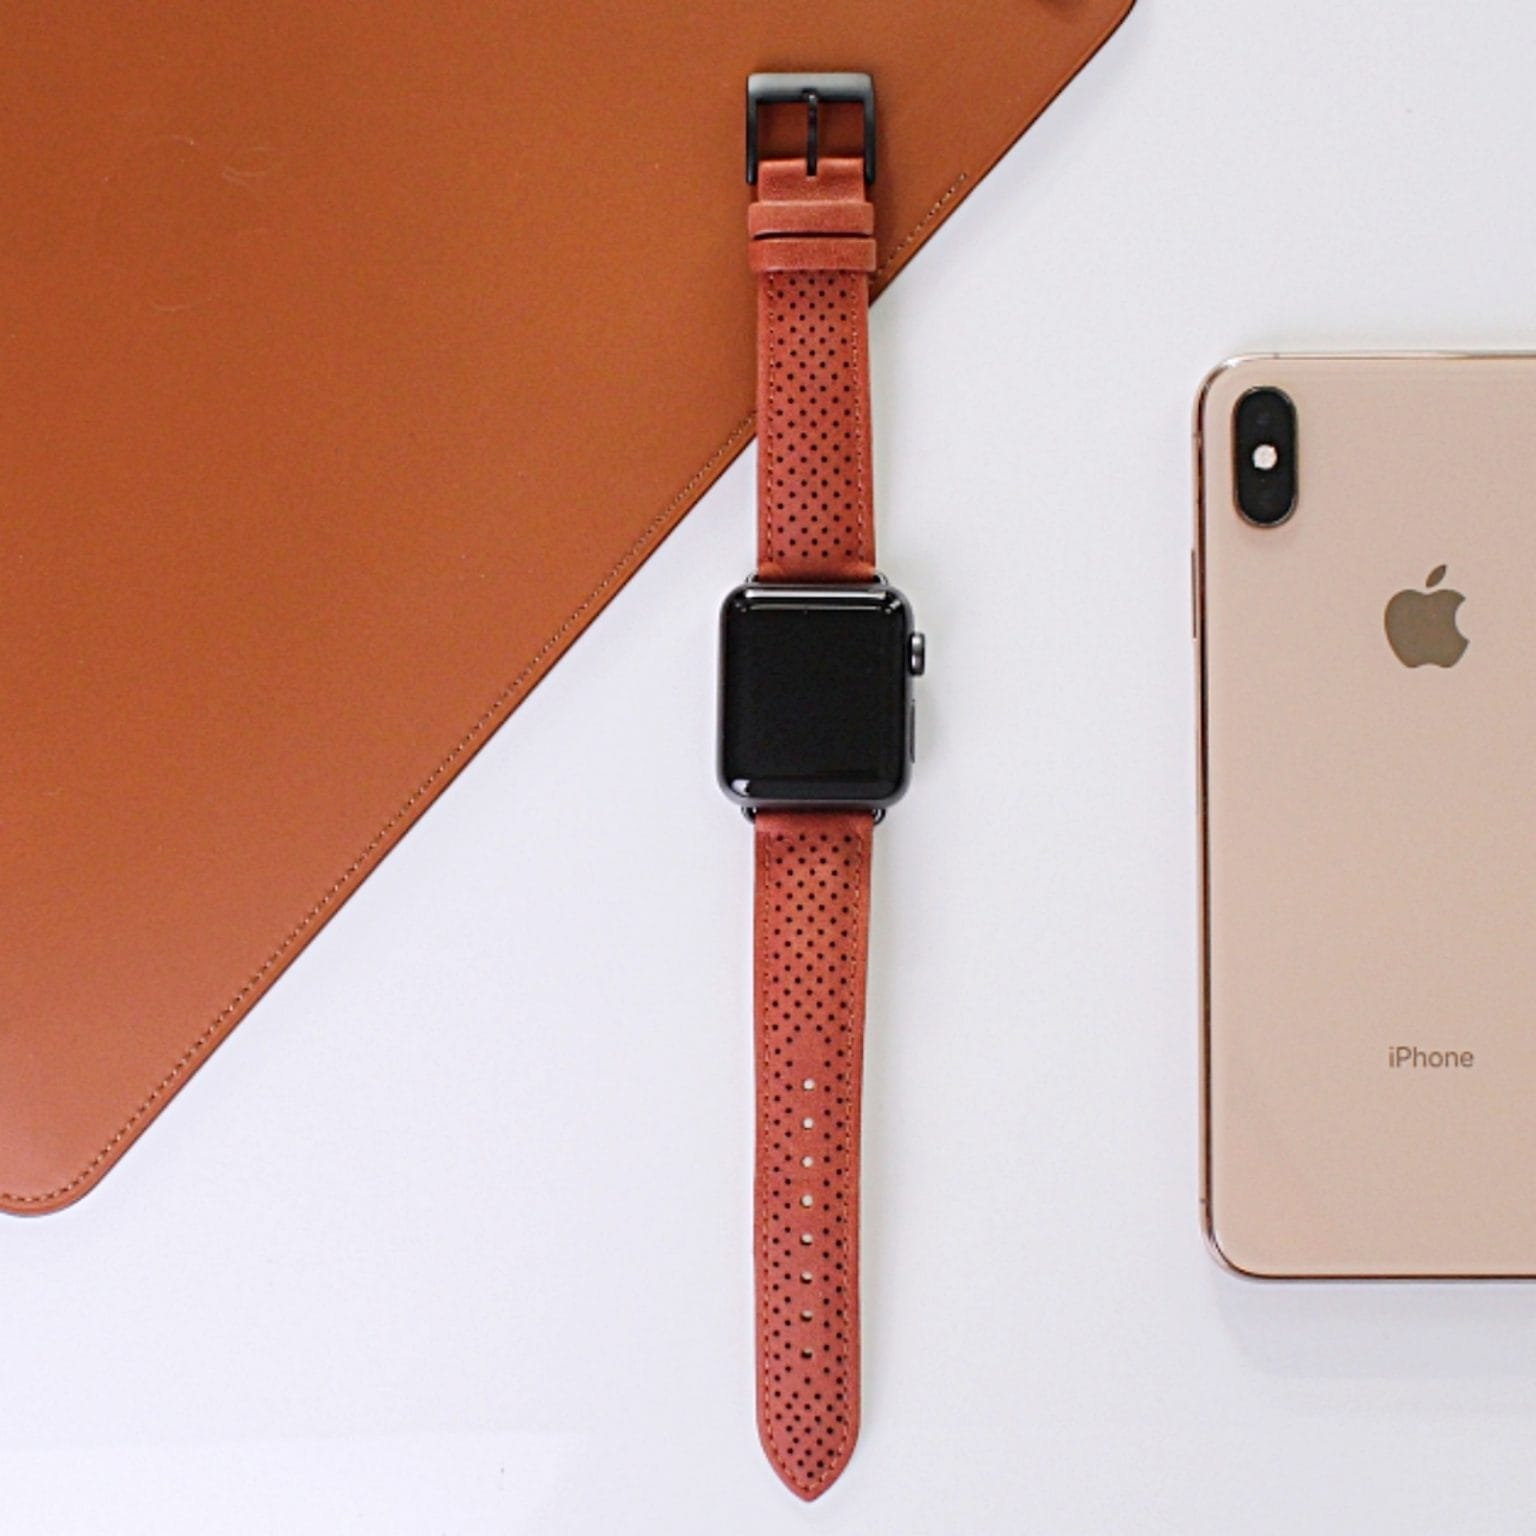 Win a classy perforated leather Apple Watch band from Monowear [Cult of Mac giveaway]